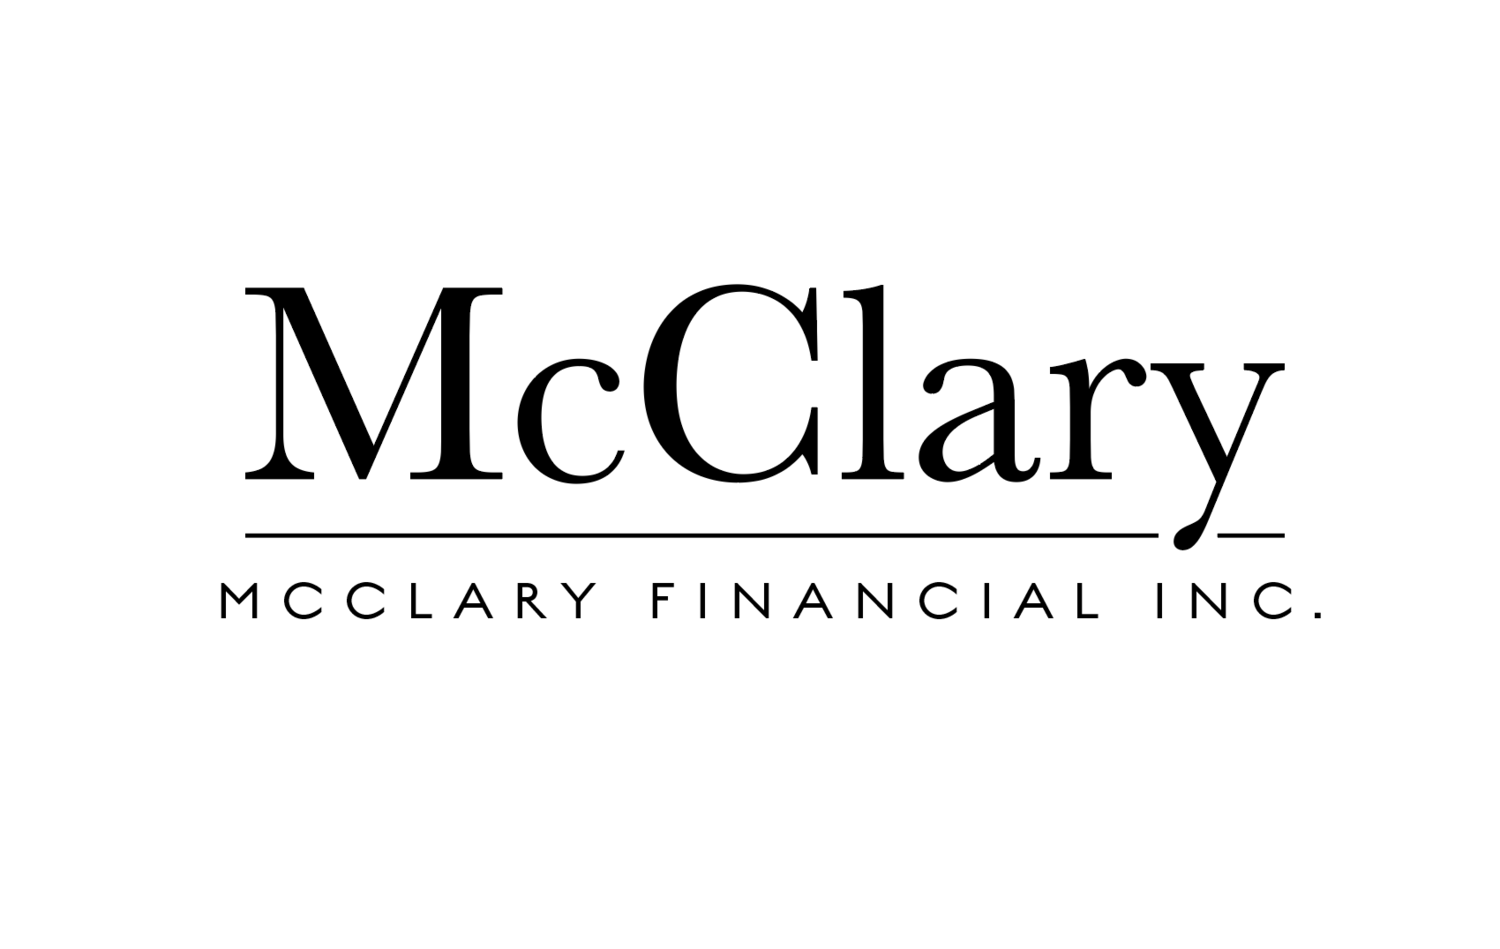 McClary Financial